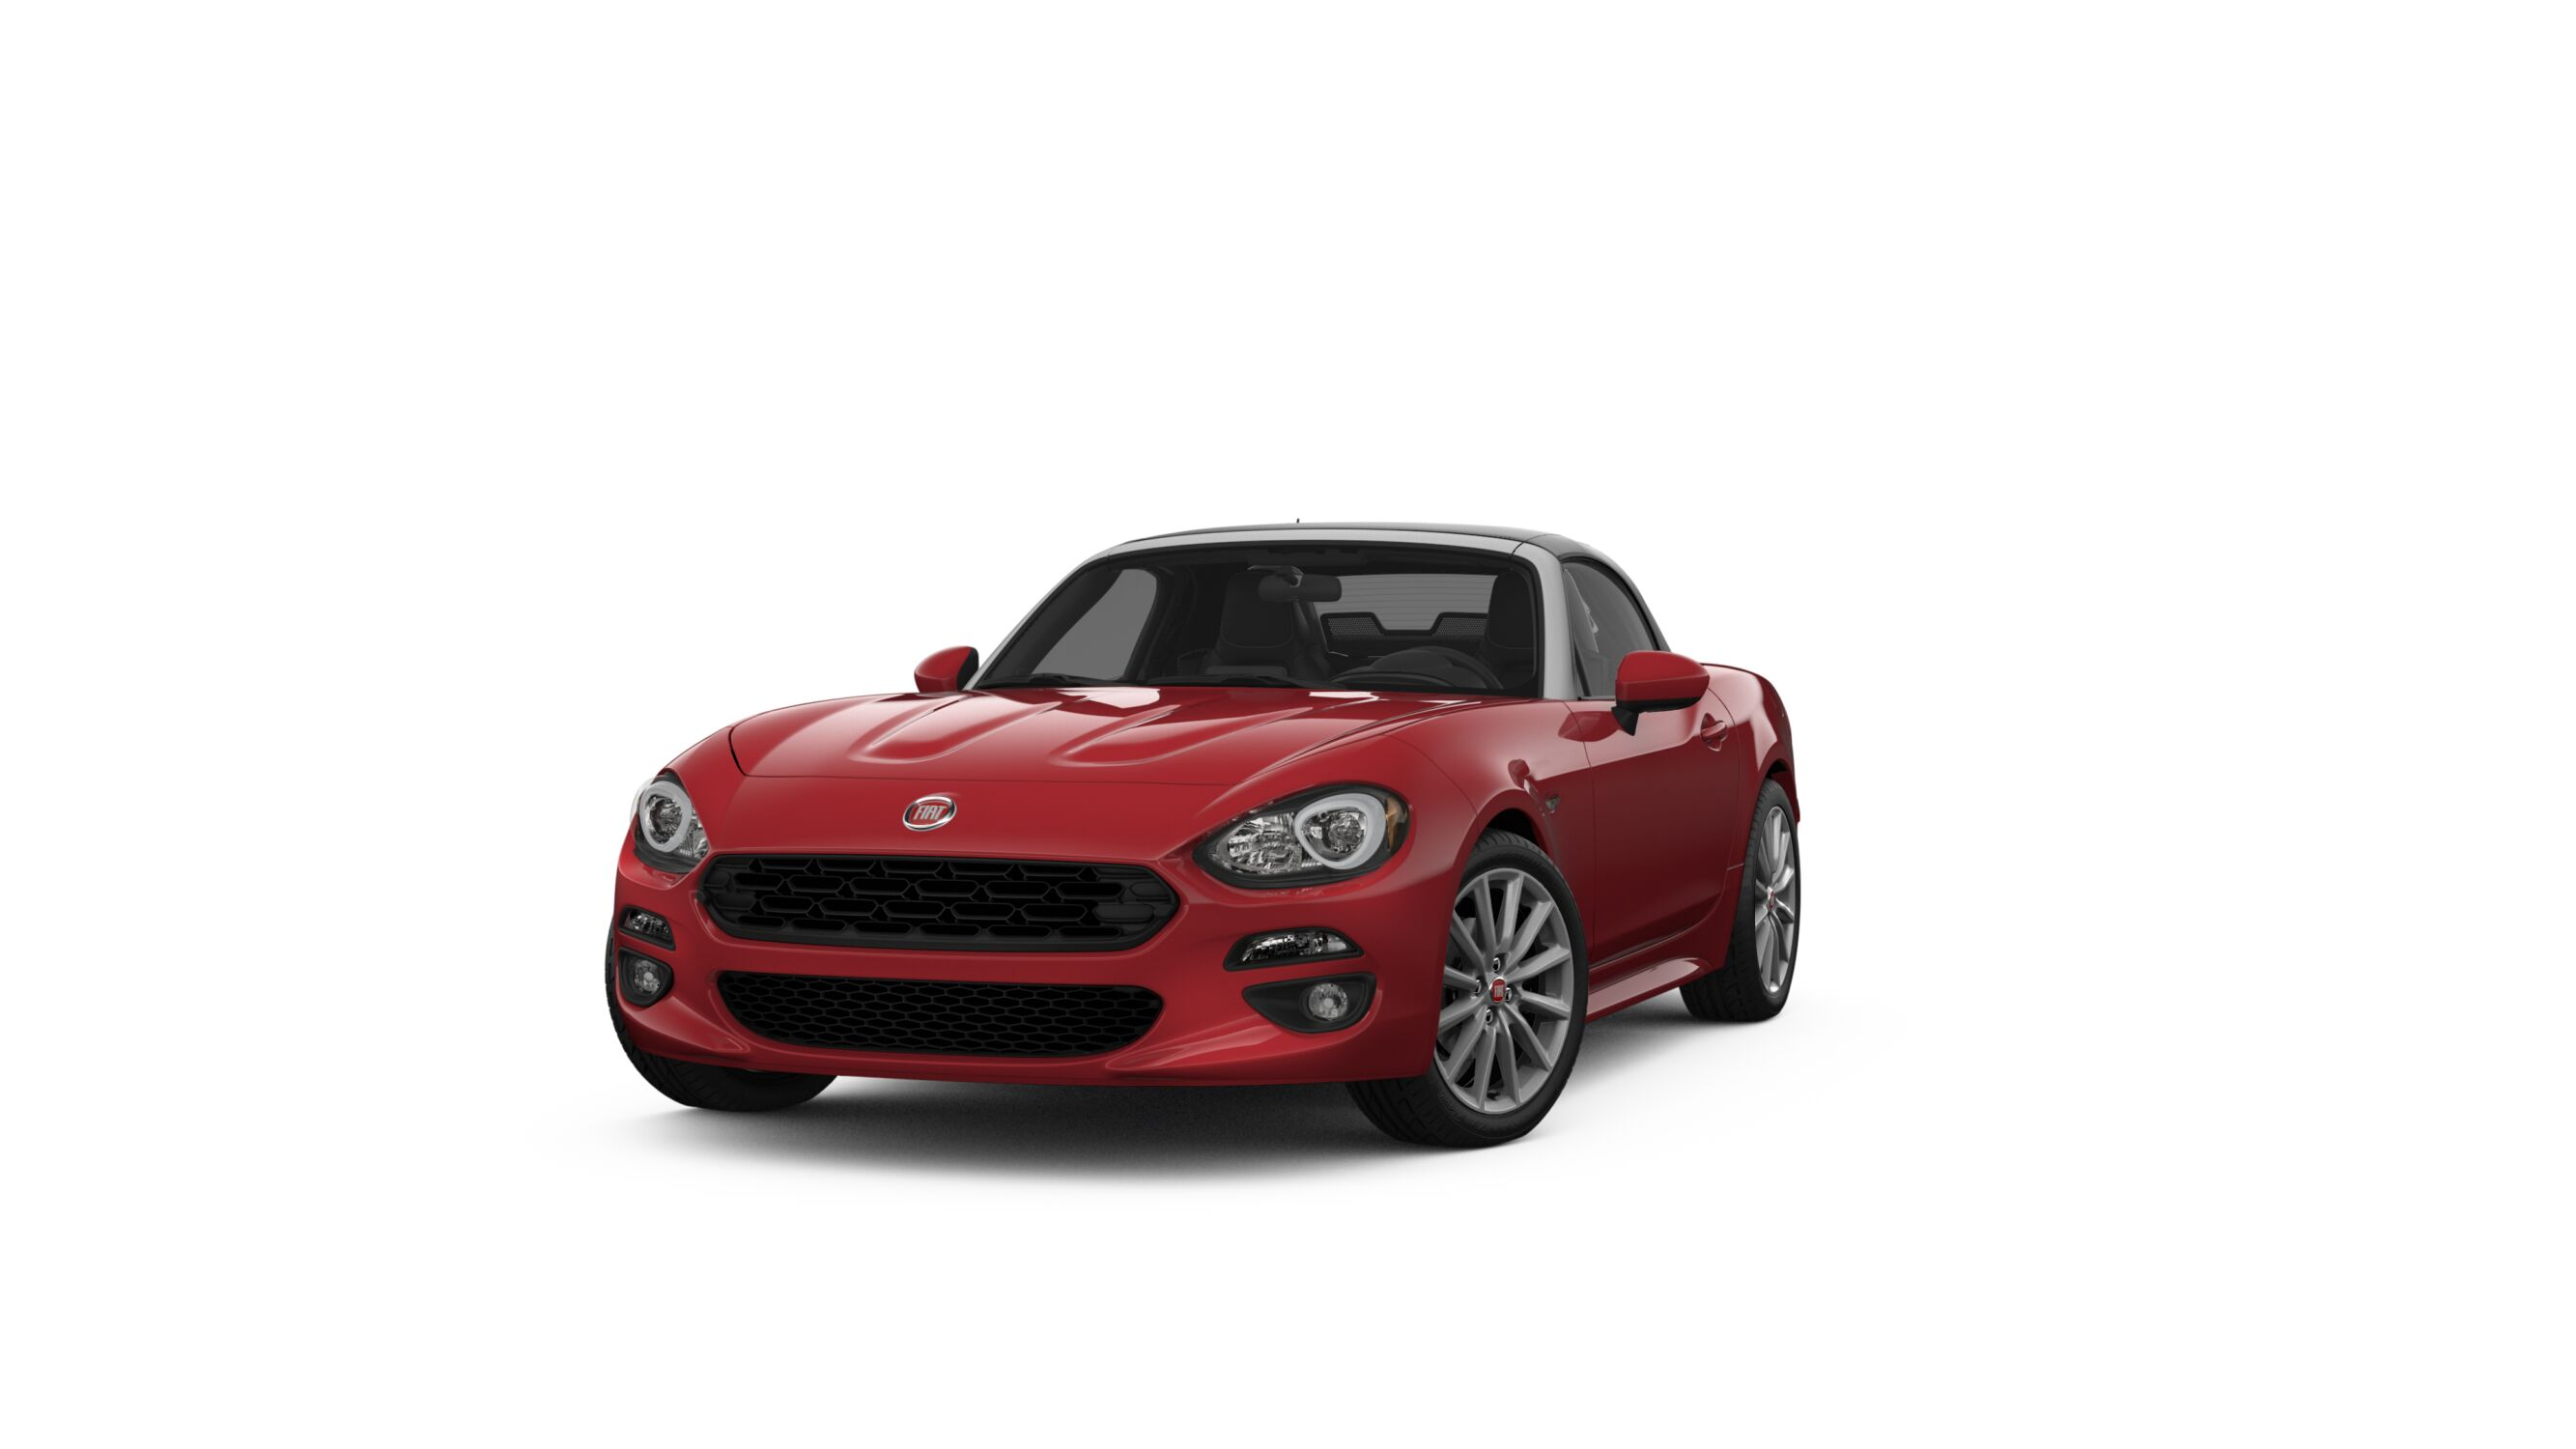 2018 FIAT 124 Spider Lusso Red Exterior Front View